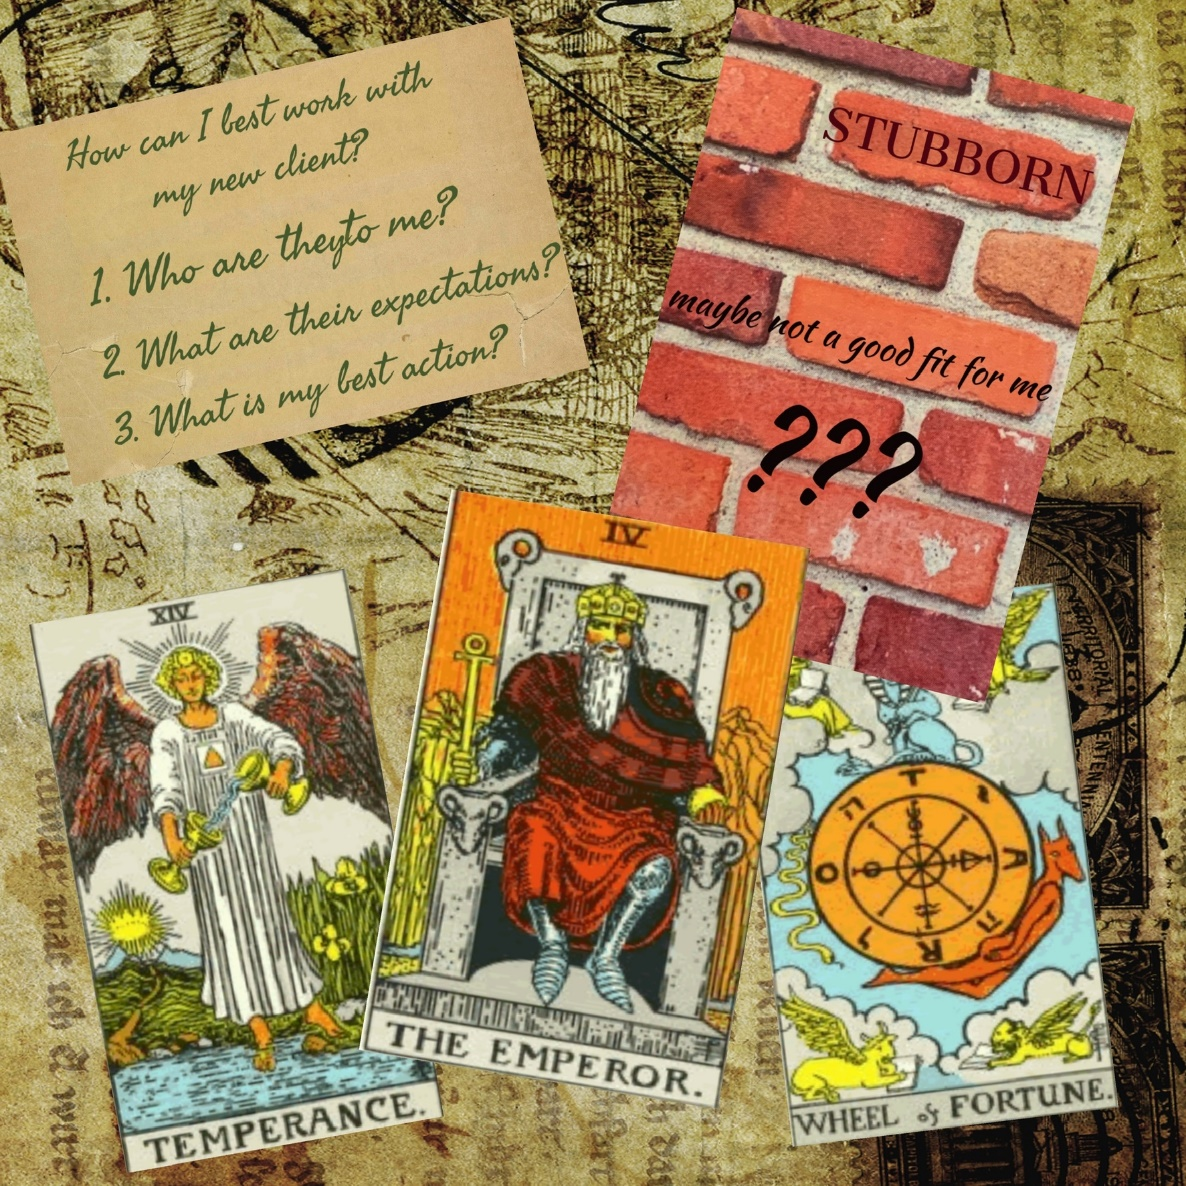 A page from Nancy Hendrickson's tarot journal scrapbook – deciding whether or not to work with a new client